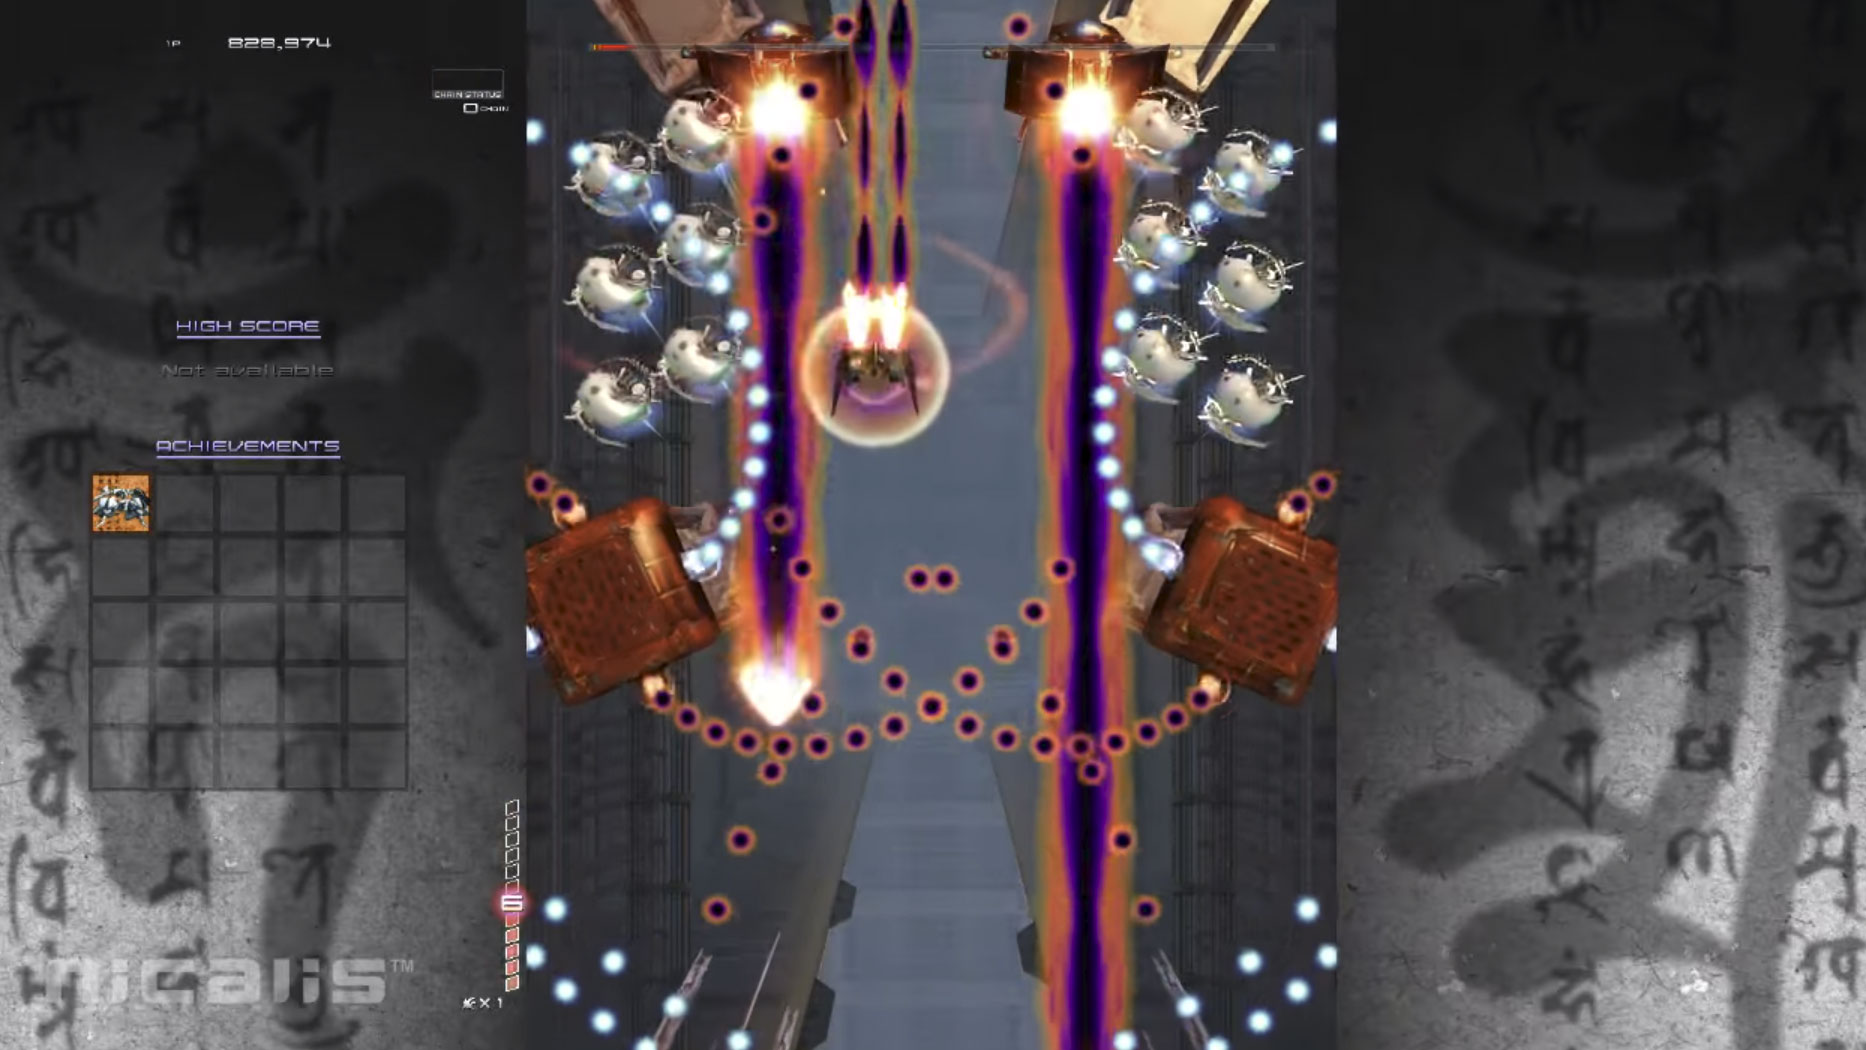 Classic Shooter Ikaruga Coming to Nintendo Switch Later This Month